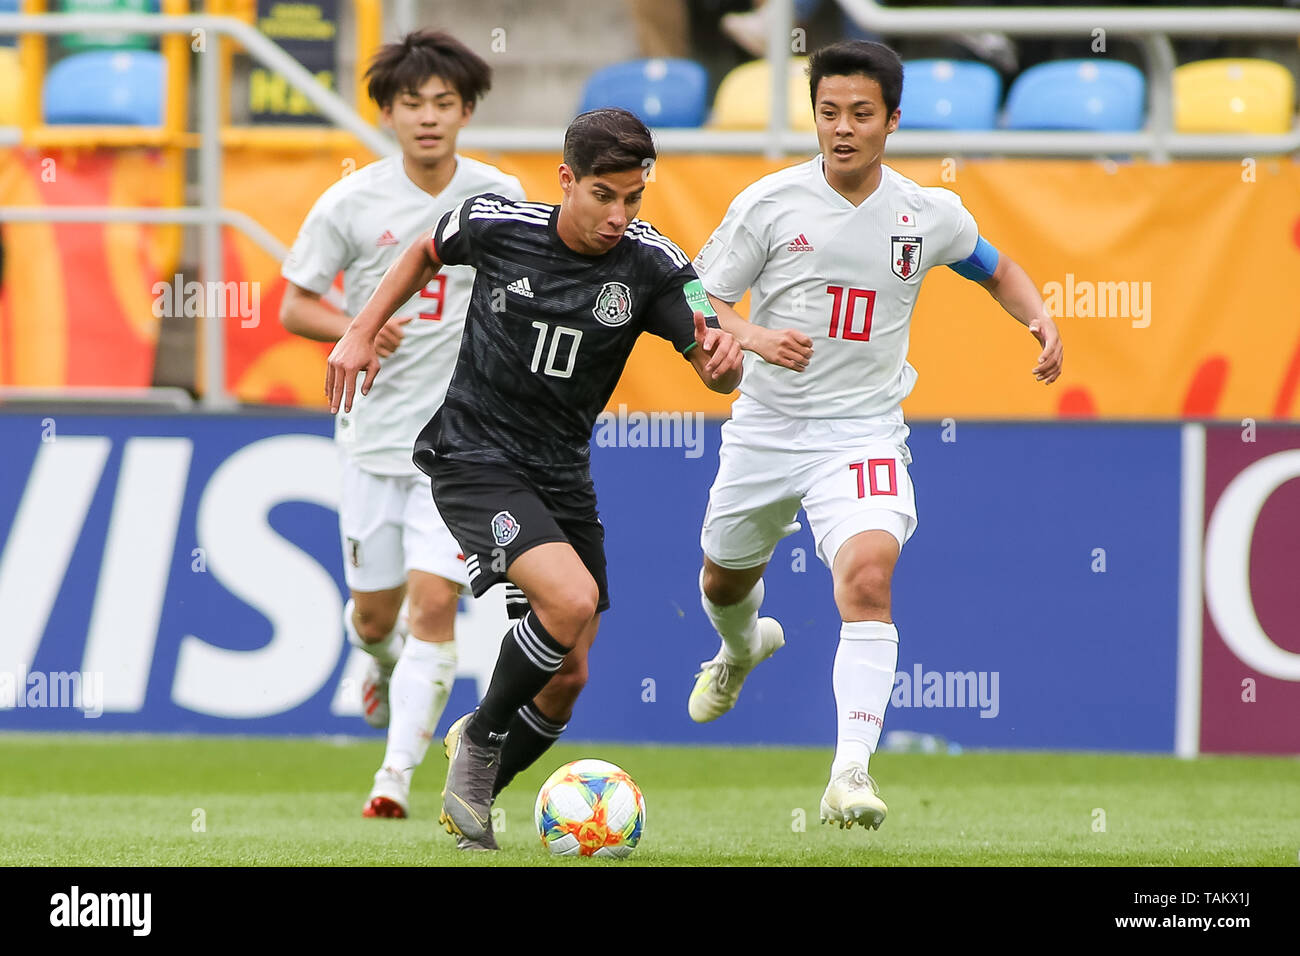 Gdynia Stadium, Gdynia, Poland - 26th May, 2019: Koki Saito (L), Mitsuki Saito (L) from Japan and Diego Lainez (C) from Mexico seen in action during FIFA U-20 World Cup match between Mexico and Japan (GROUP B) in Gdynia. (Final score; Mexico 0:3 Japan) - Stock Image